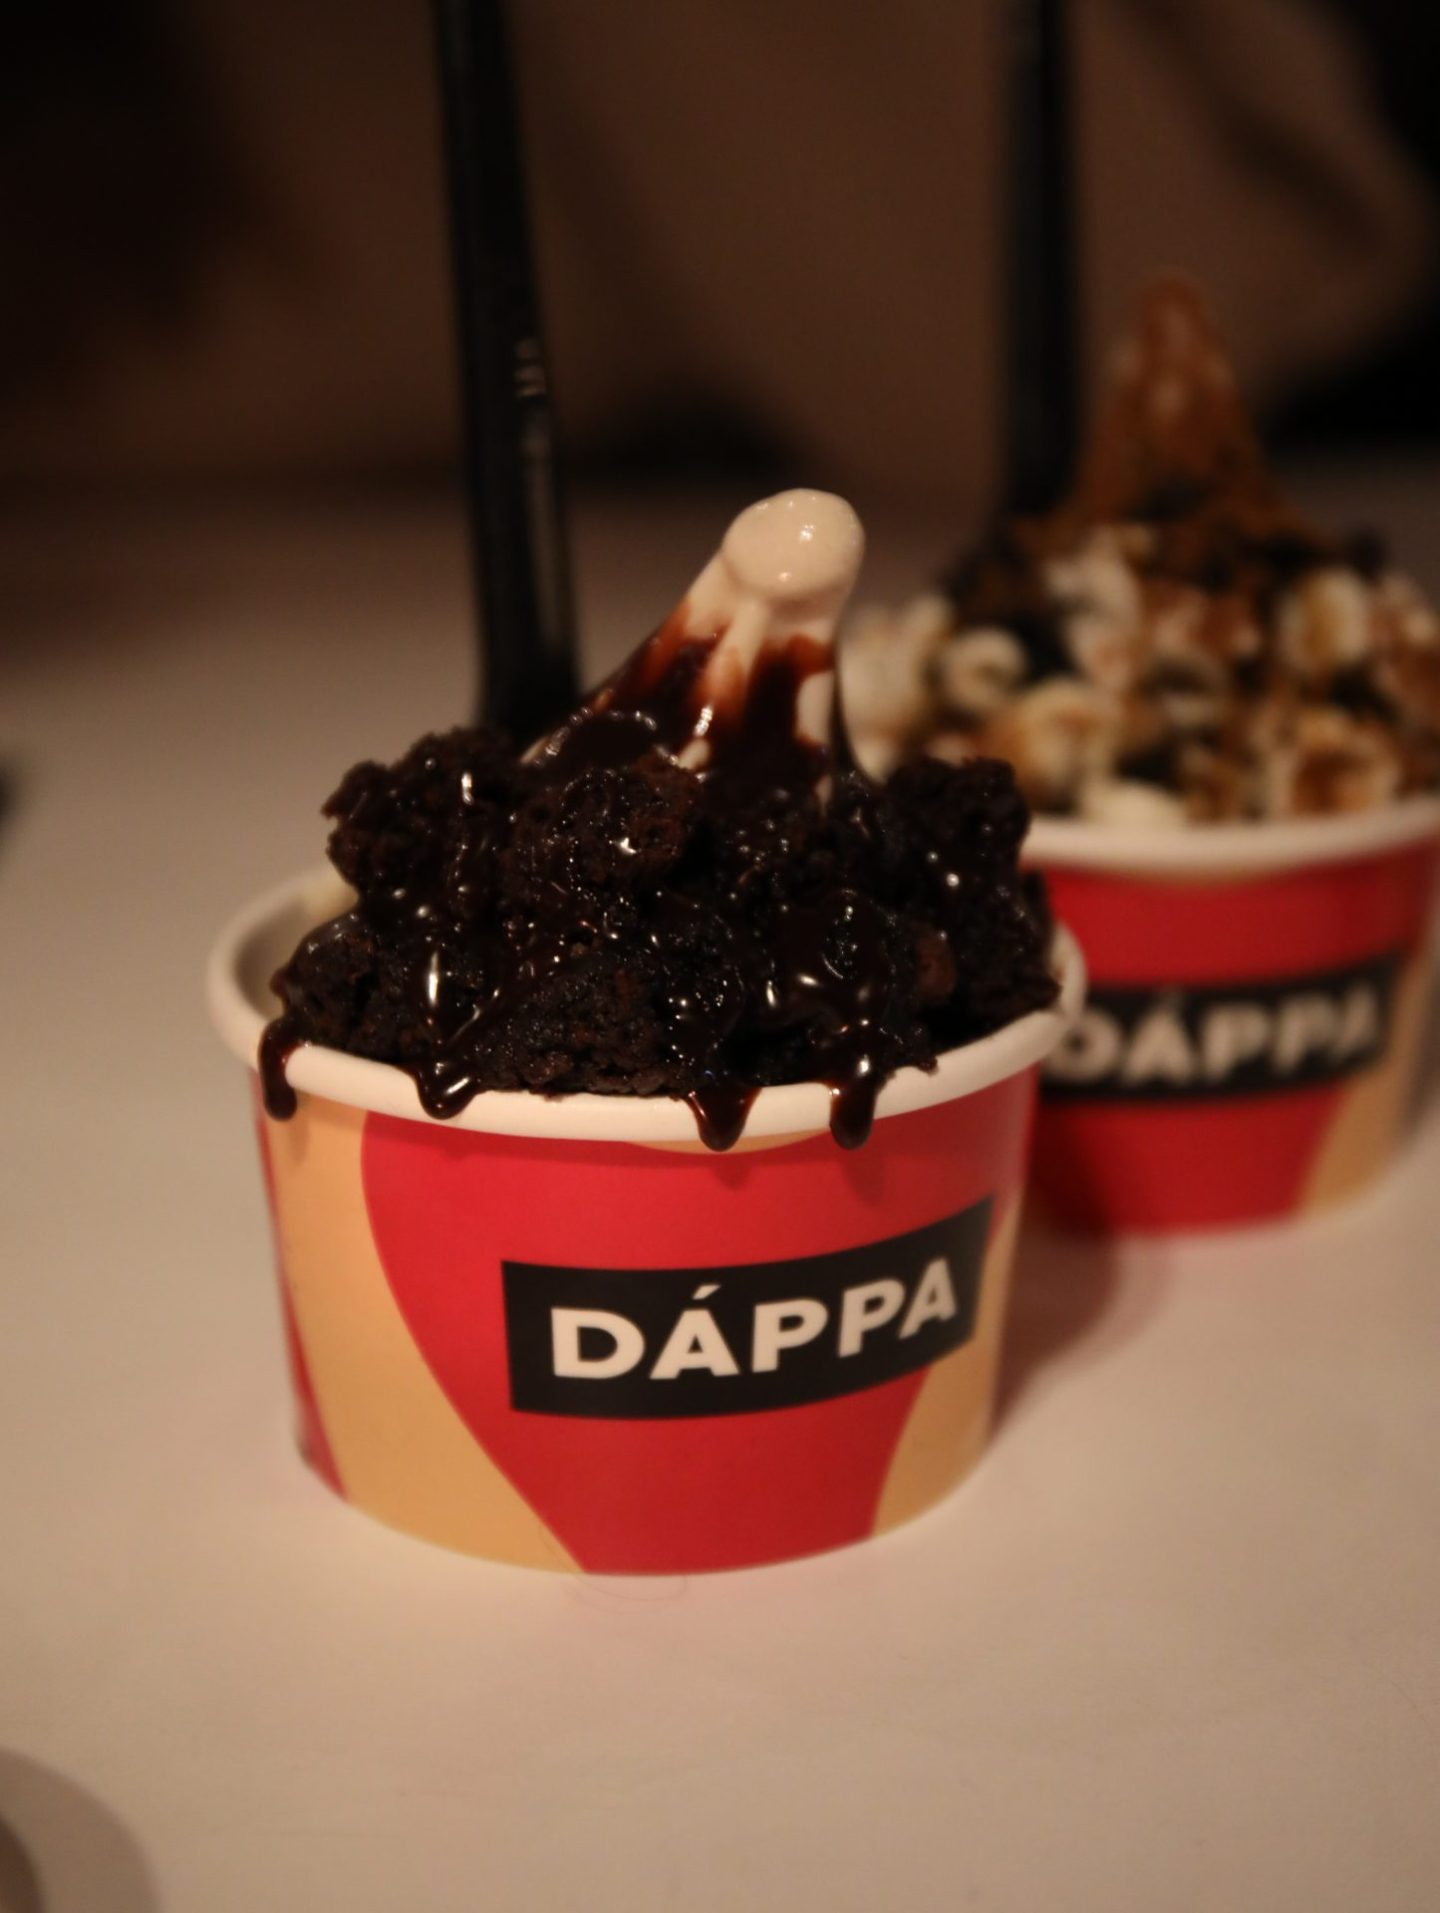 DAPPA Soft Serve Dirty Vegan